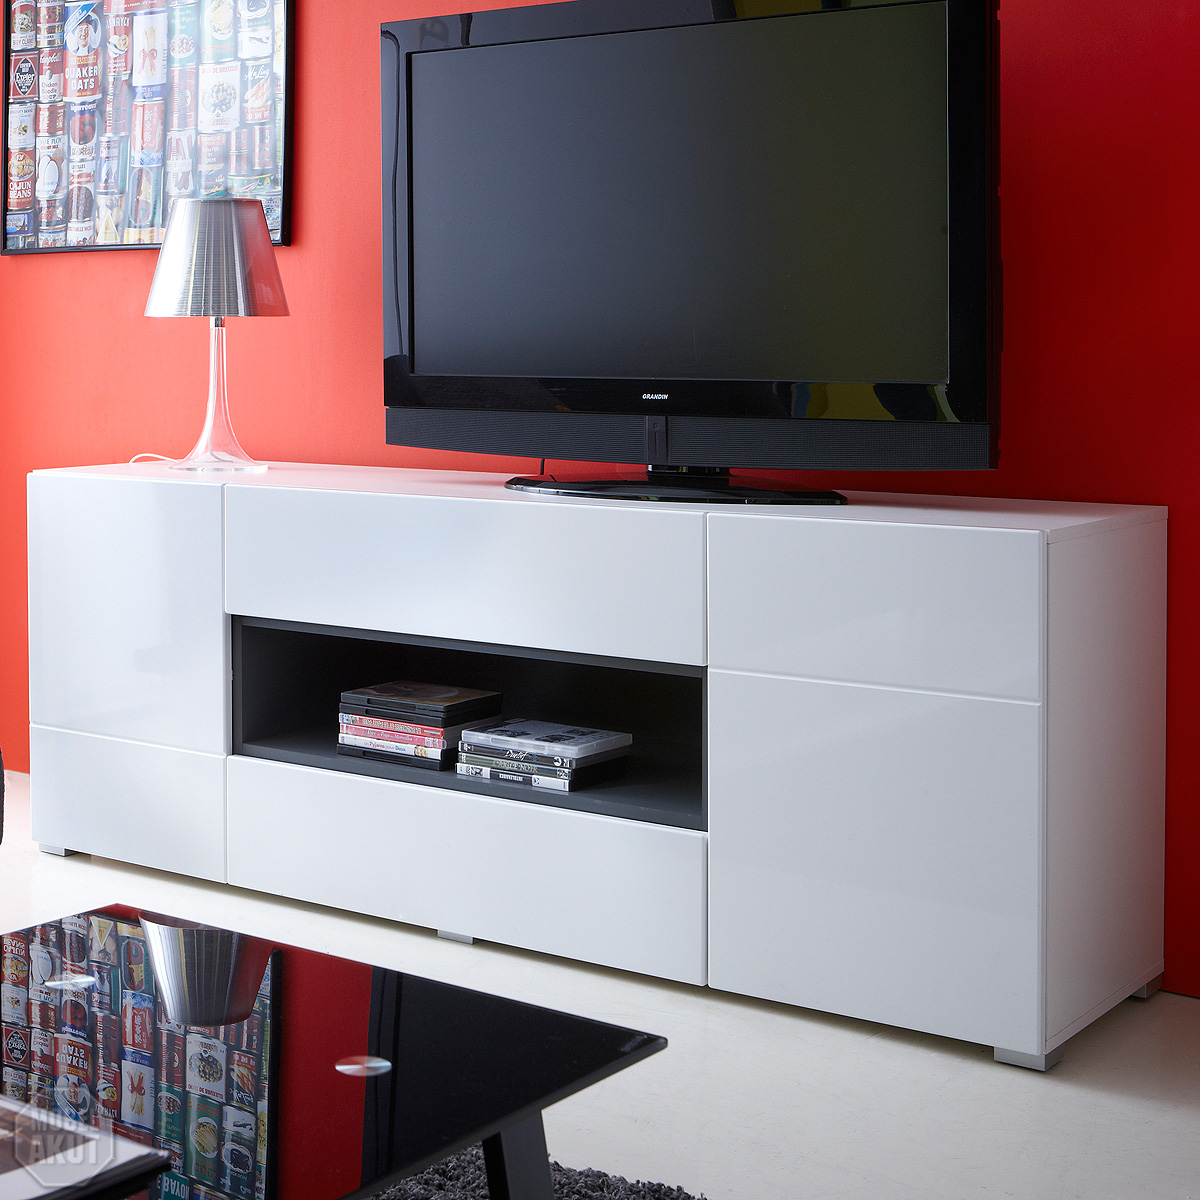 lowboard pablo sideboard tv media m bel in hochglanz wei graphit ebay. Black Bedroom Furniture Sets. Home Design Ideas